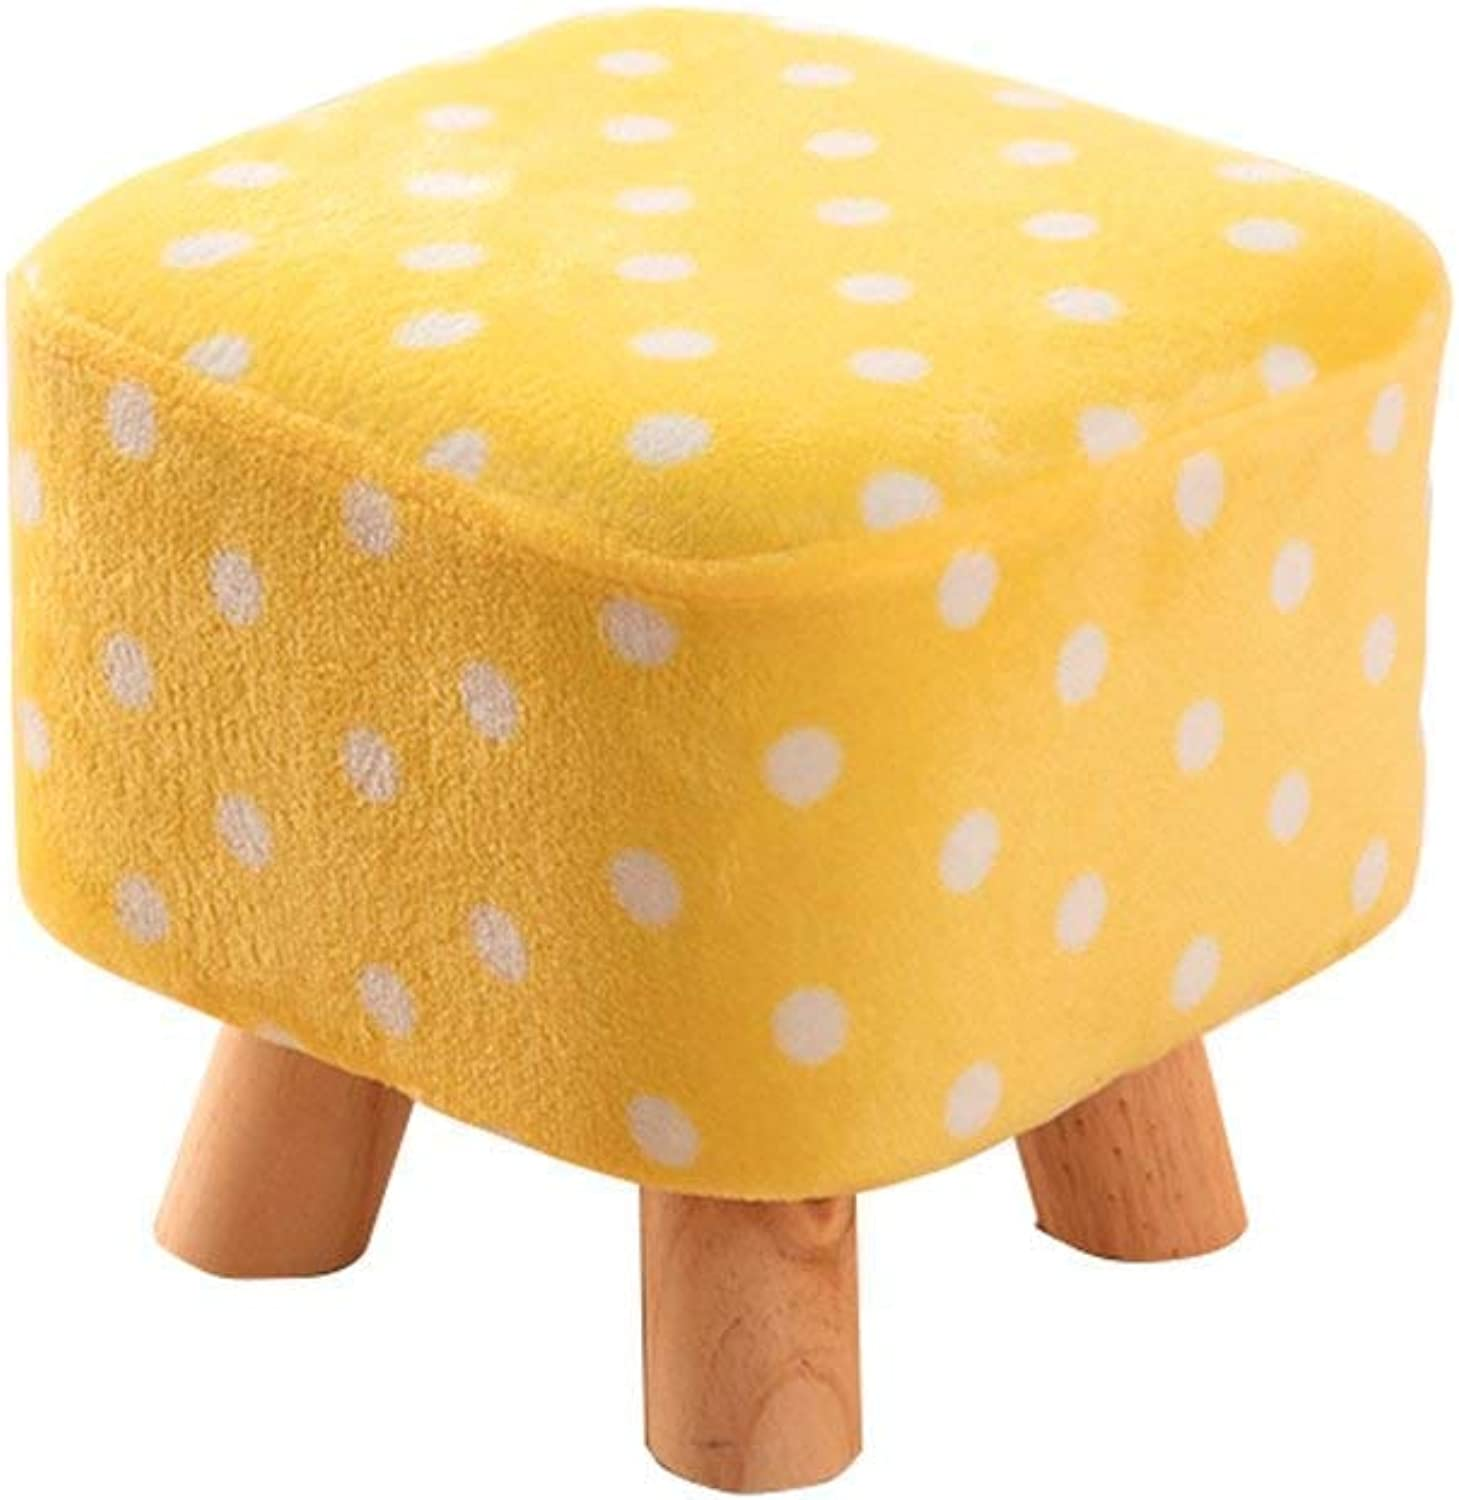 Ronggoutrade Chair-Solid Wood Stool shoes shoes Fashion shoes Stool Stool Fabric Stool Sofa Stool Home Coffee Table Bench Home Convenient (color   Yellow)